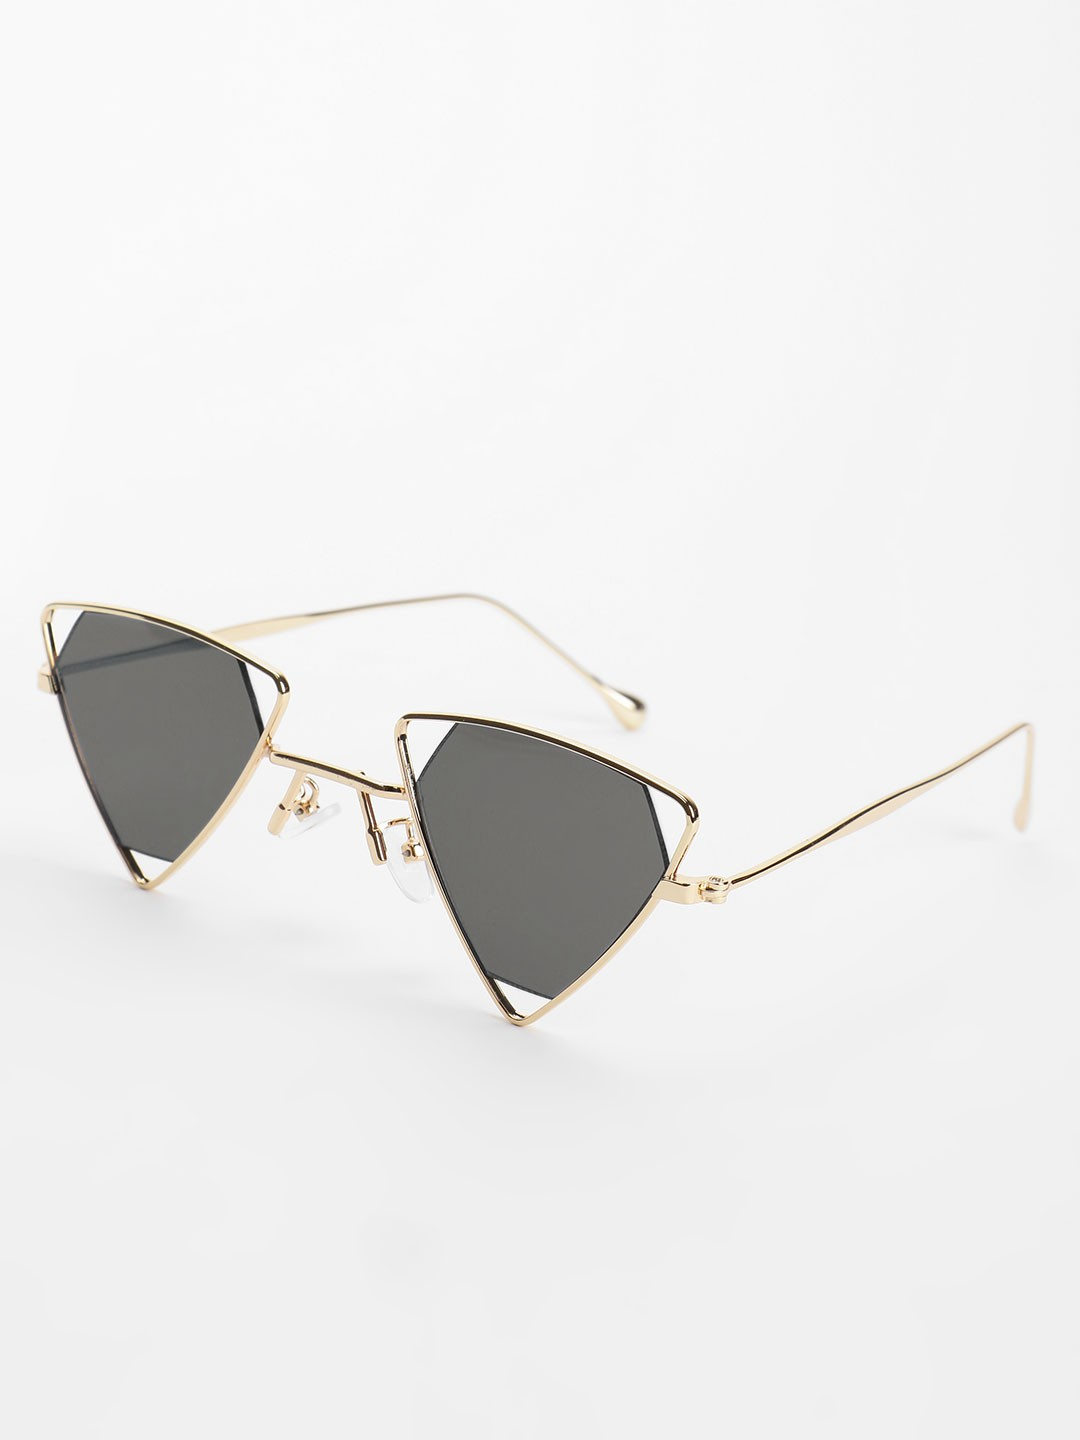 Pataaka Black Triangle Frame Retro Sunglasses 1